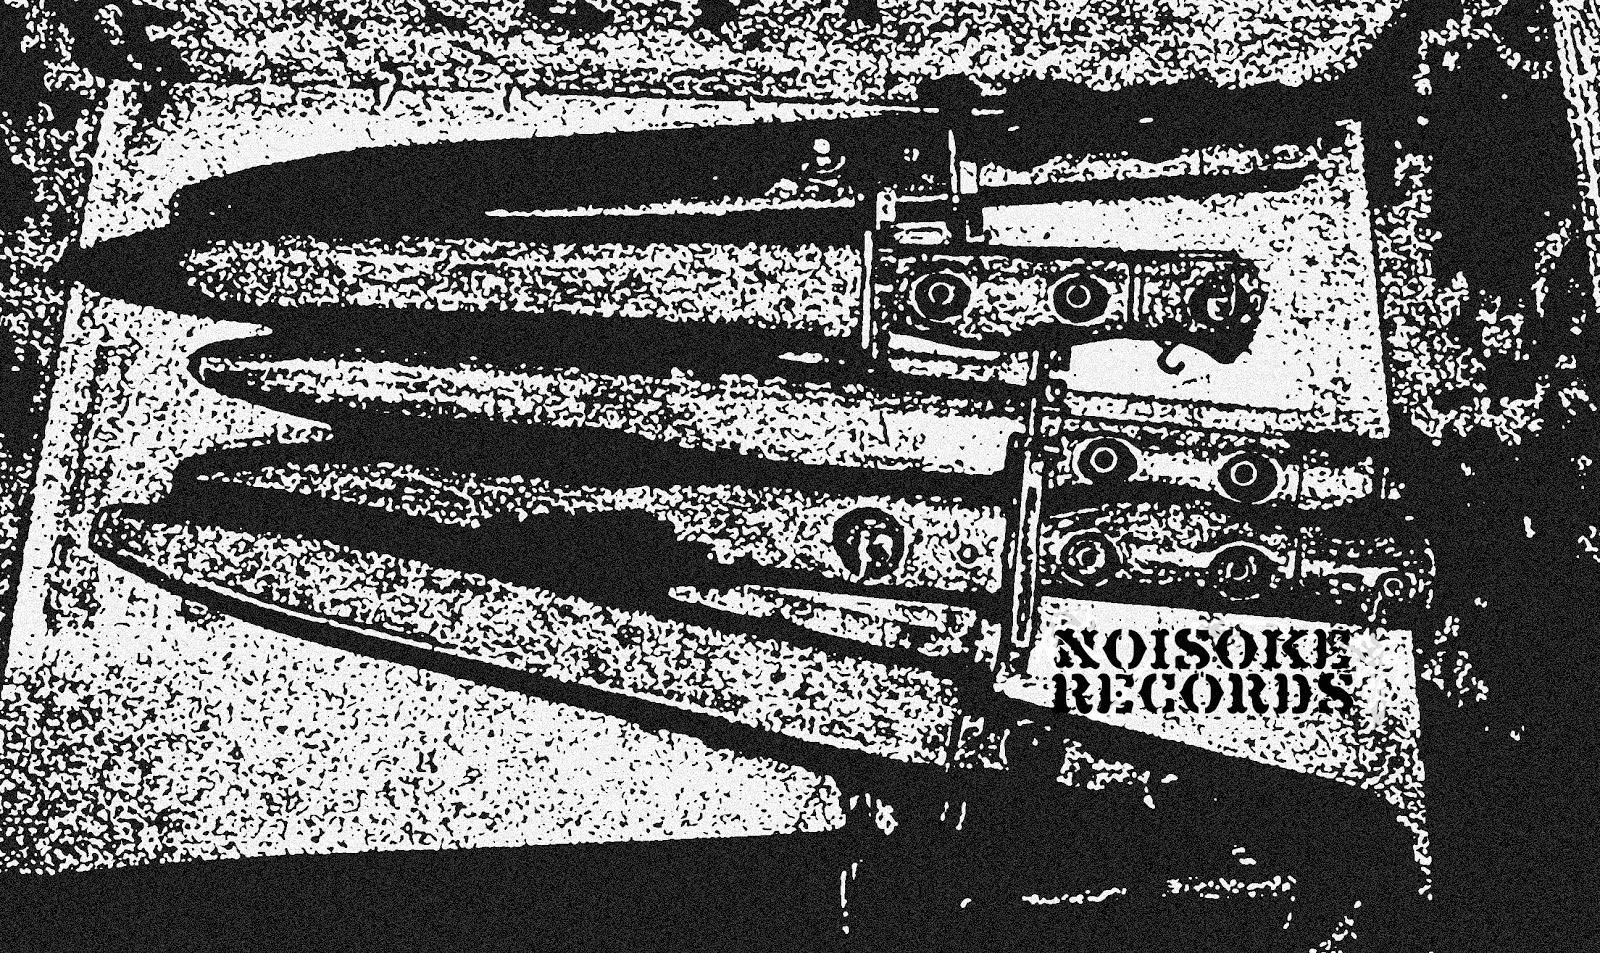 ORGASM DENIAL & NOISOKE RECORDS